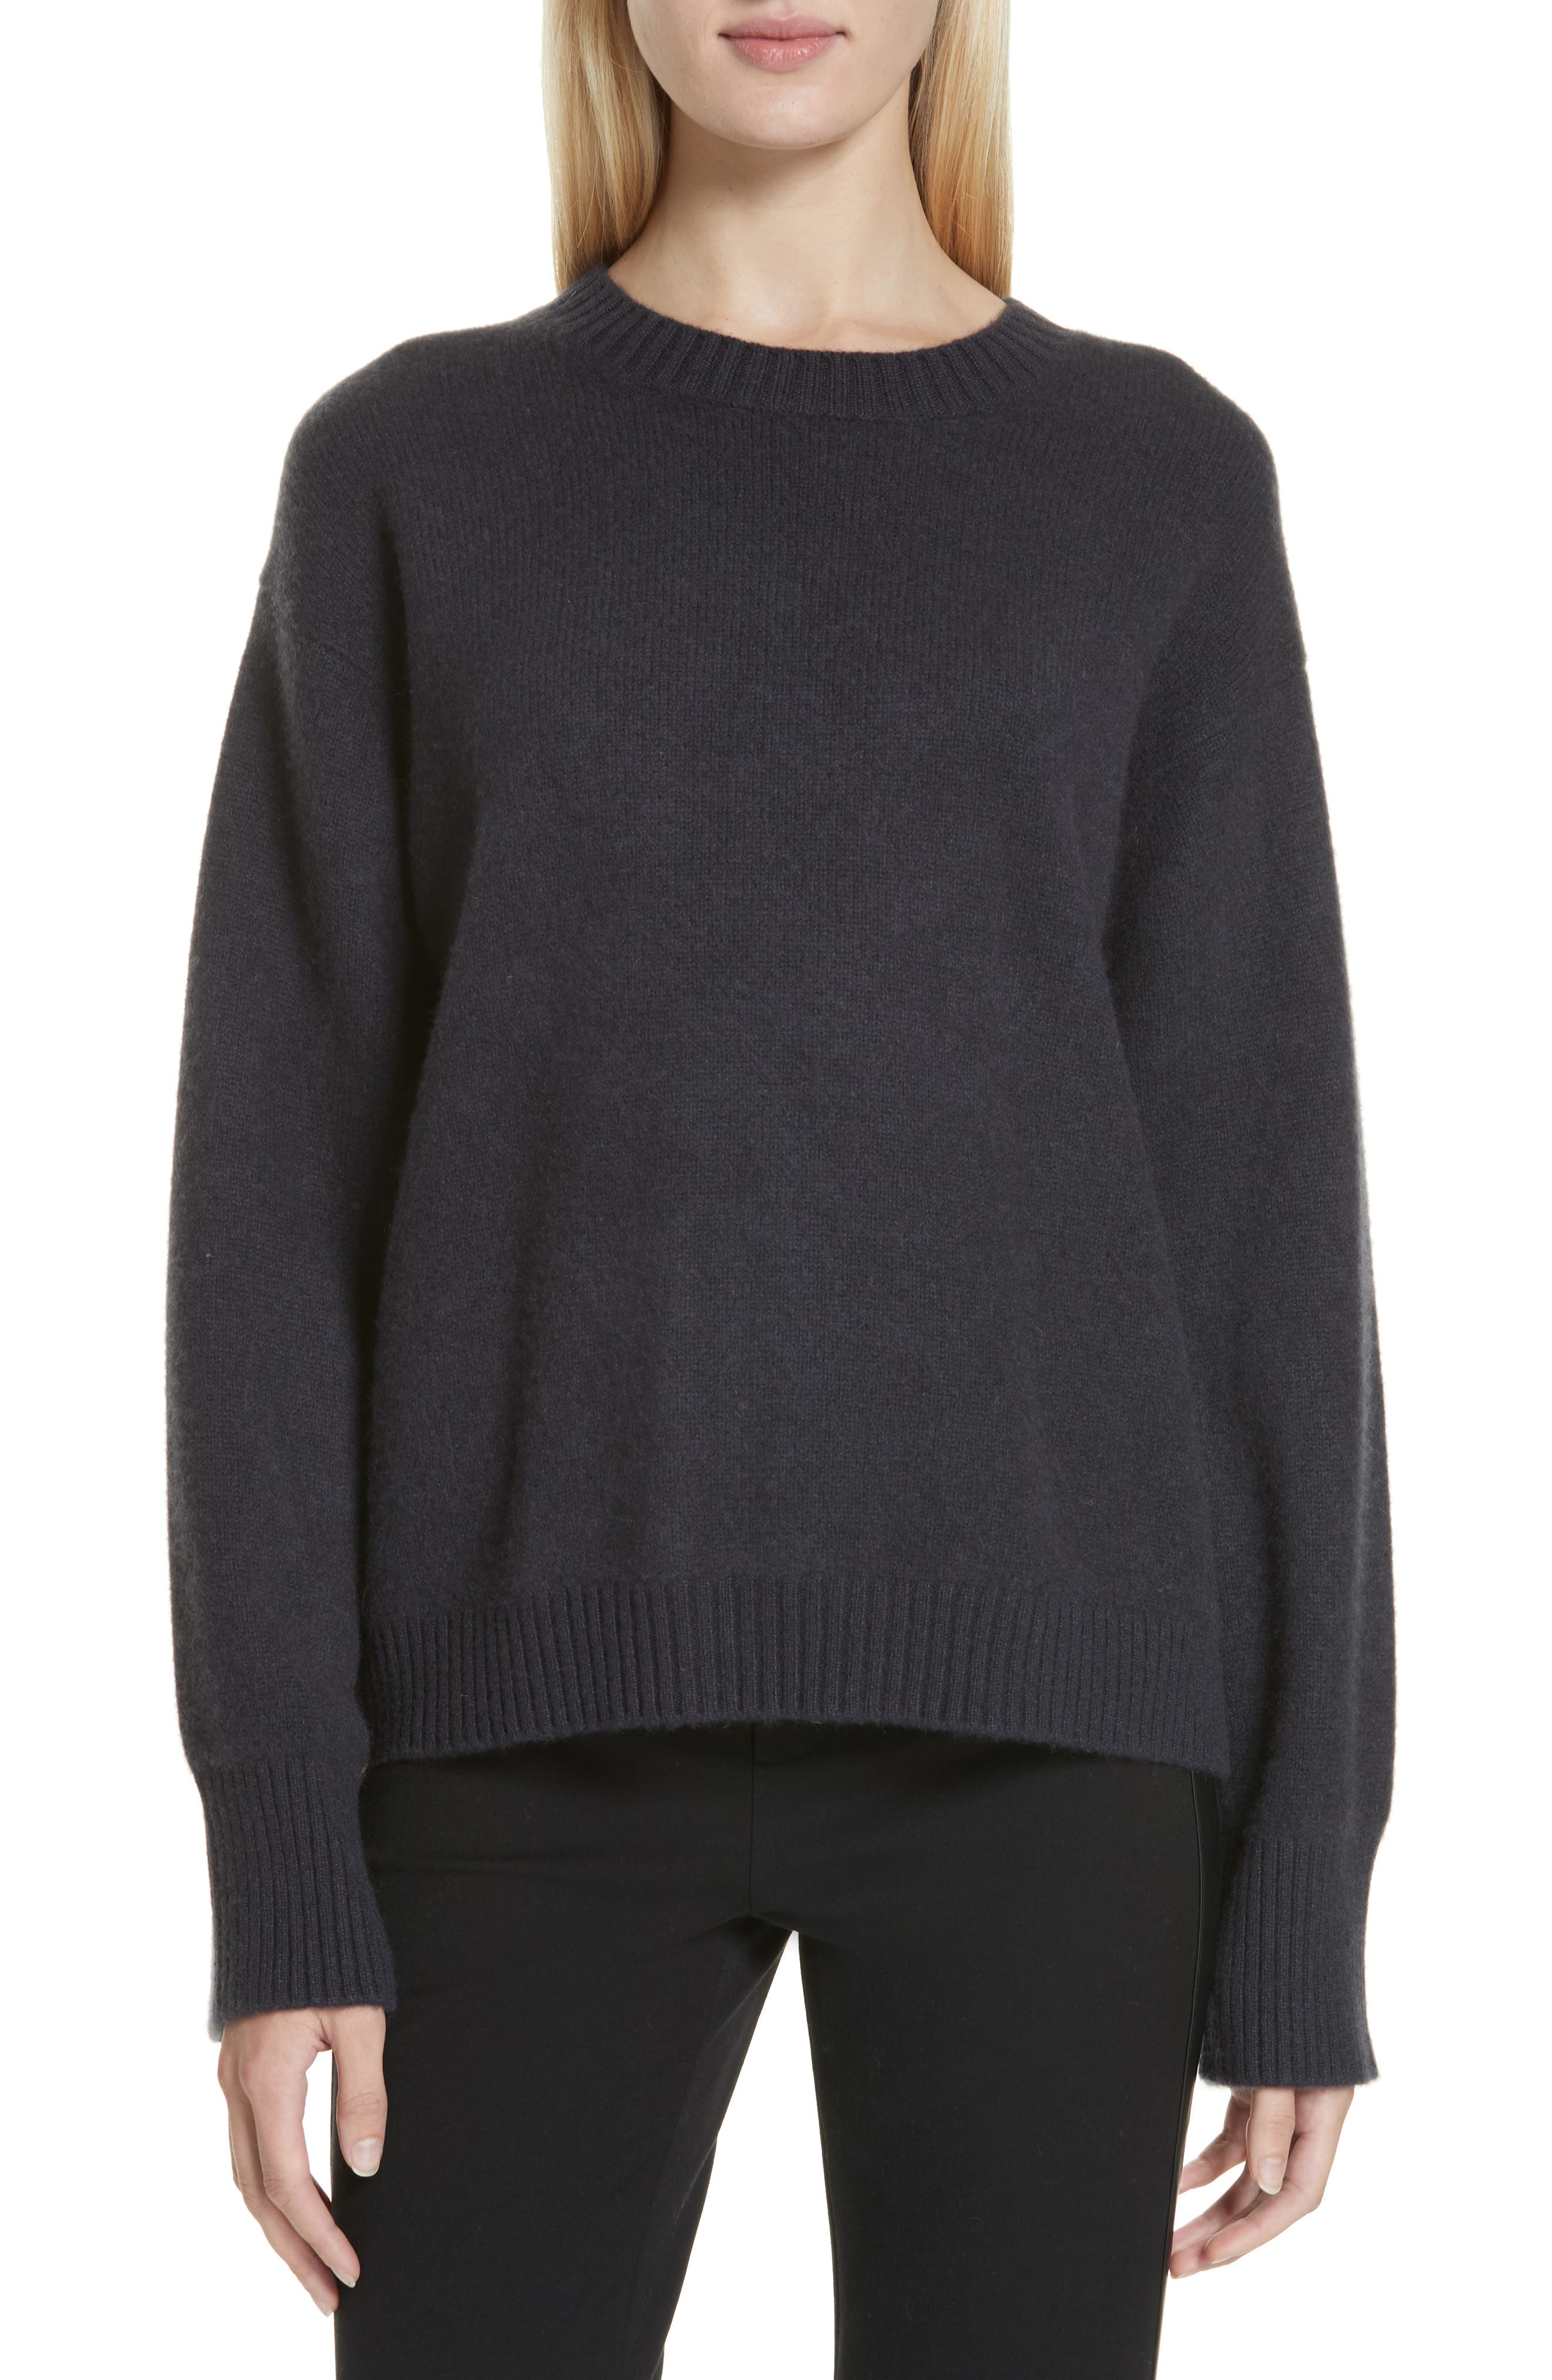 VINCE, Boxy Cashmere Sweater, Main thumbnail 1, color, OBSIDIAN